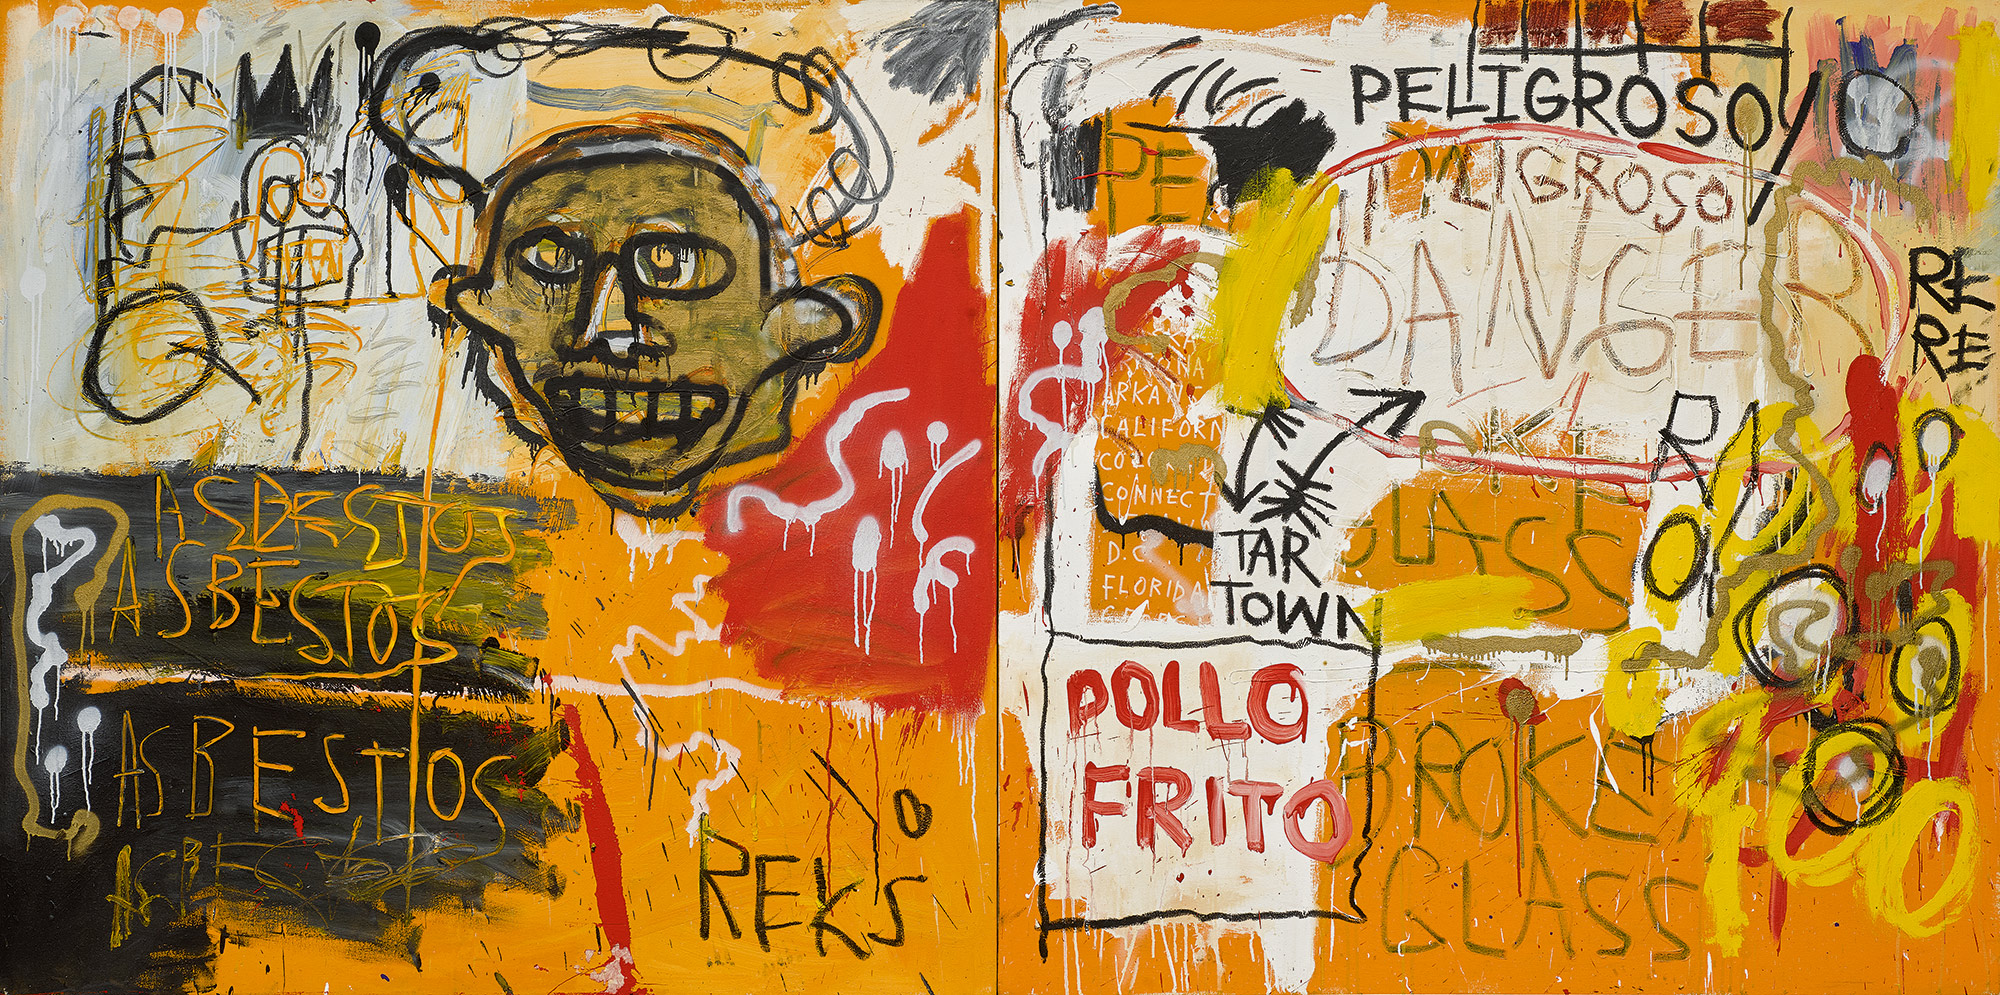 Four Works by Jean,Michel Basquiat Chart the Artist\u0027s